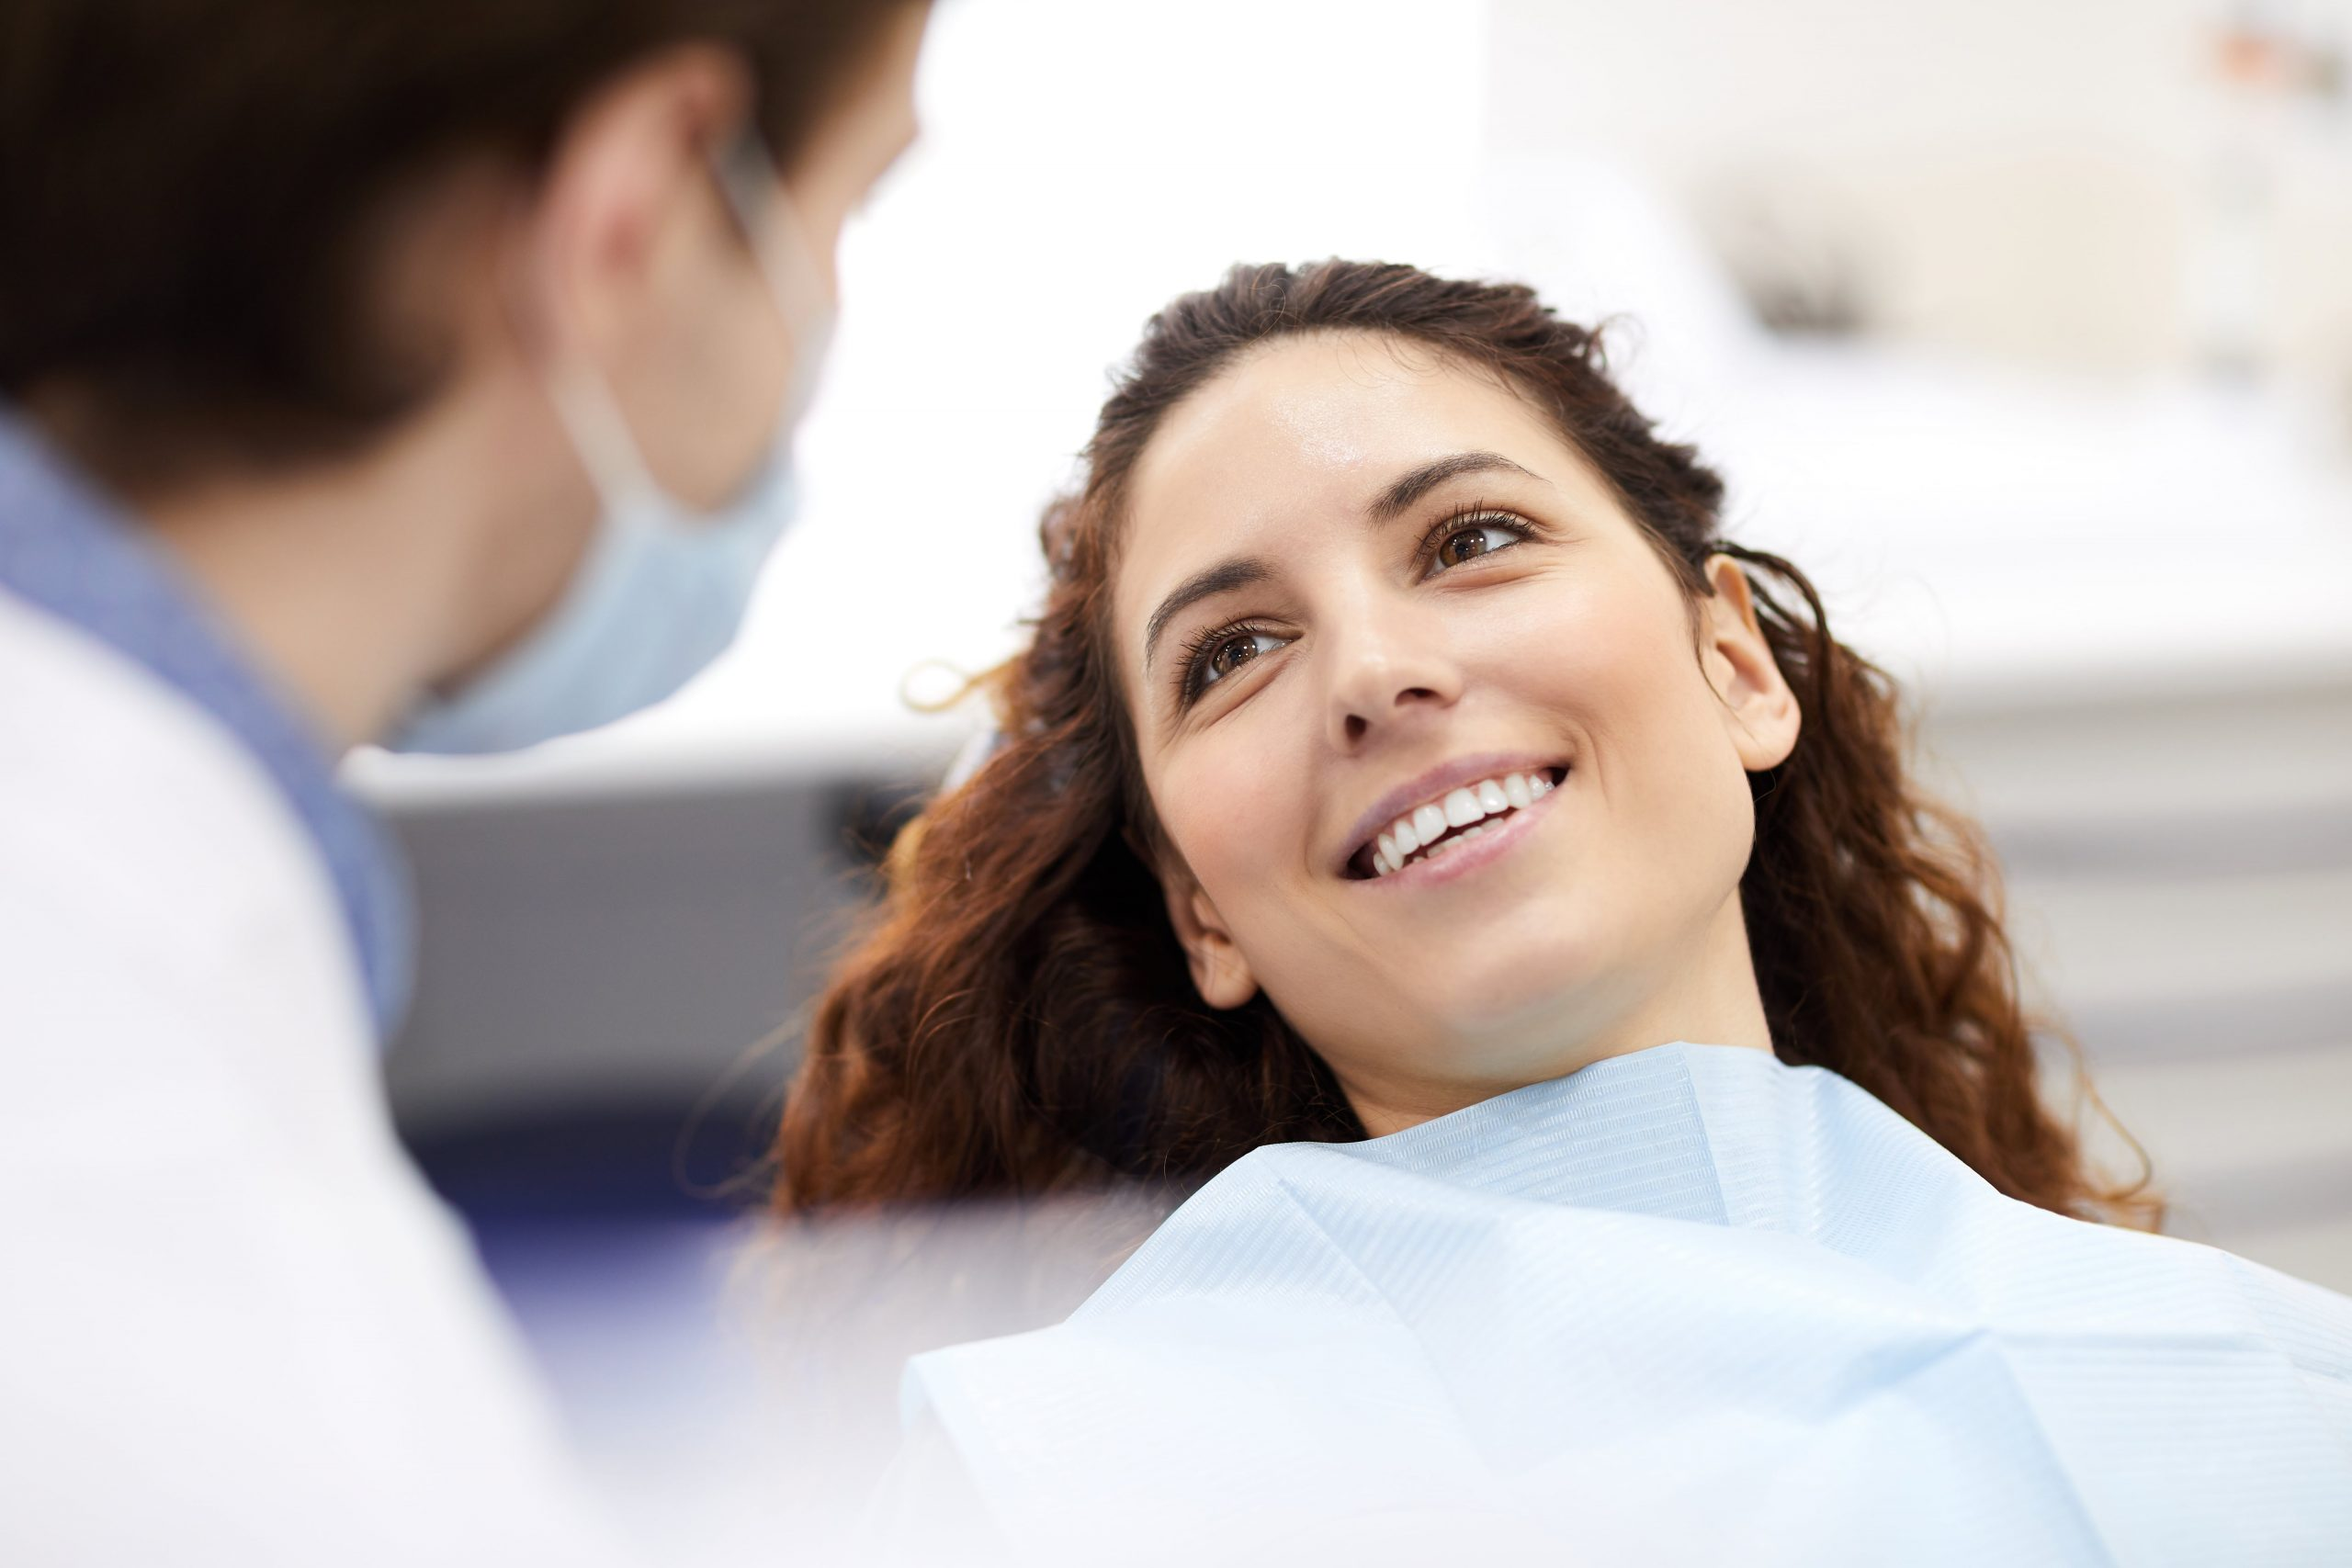 Learn about our smile makeover process